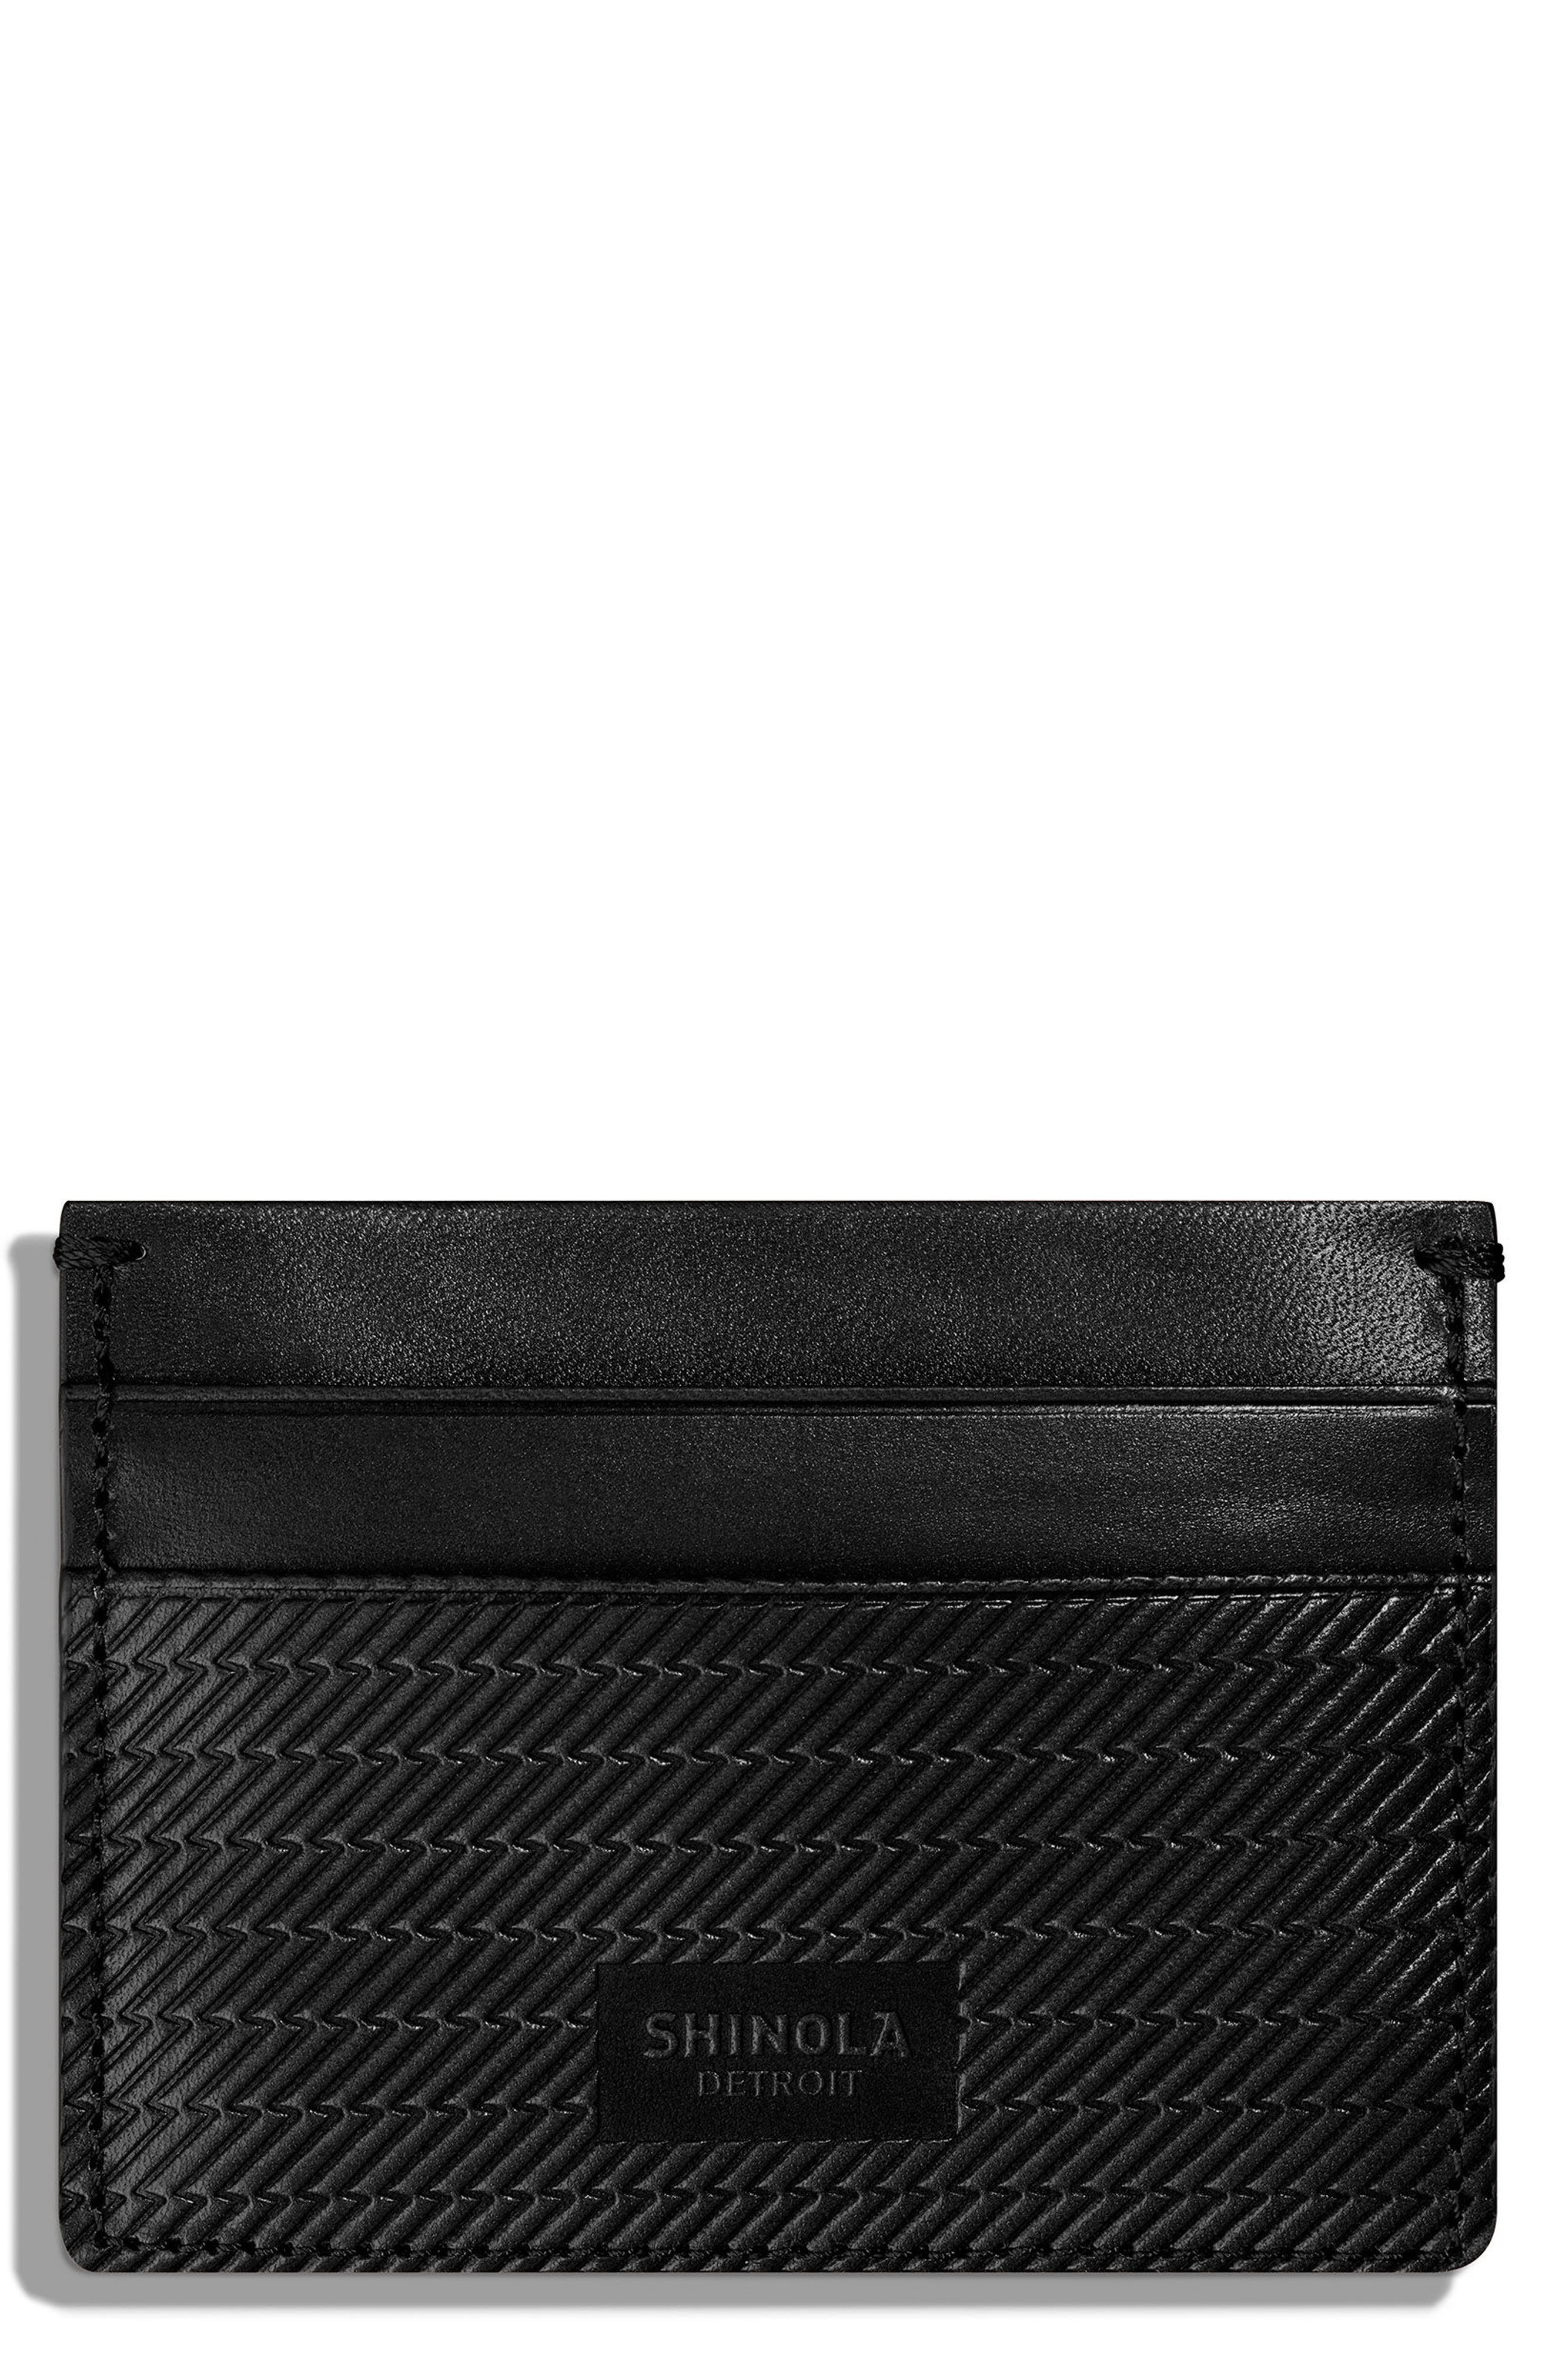 Leather Card Case,                             Main thumbnail 1, color,                             001